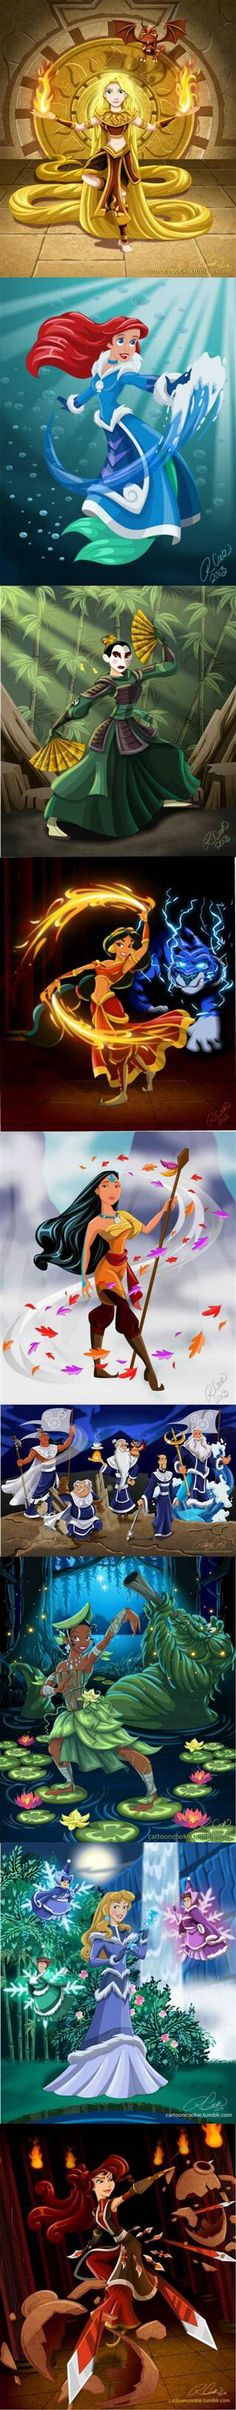 Disney, Avatar the Last Airbender crossover Walt Disney, Cute Disney, Disney Girls, Disney Magic, Disney Art, Disney Stuff, Funny Disney, Images Disney, Disney Pictures